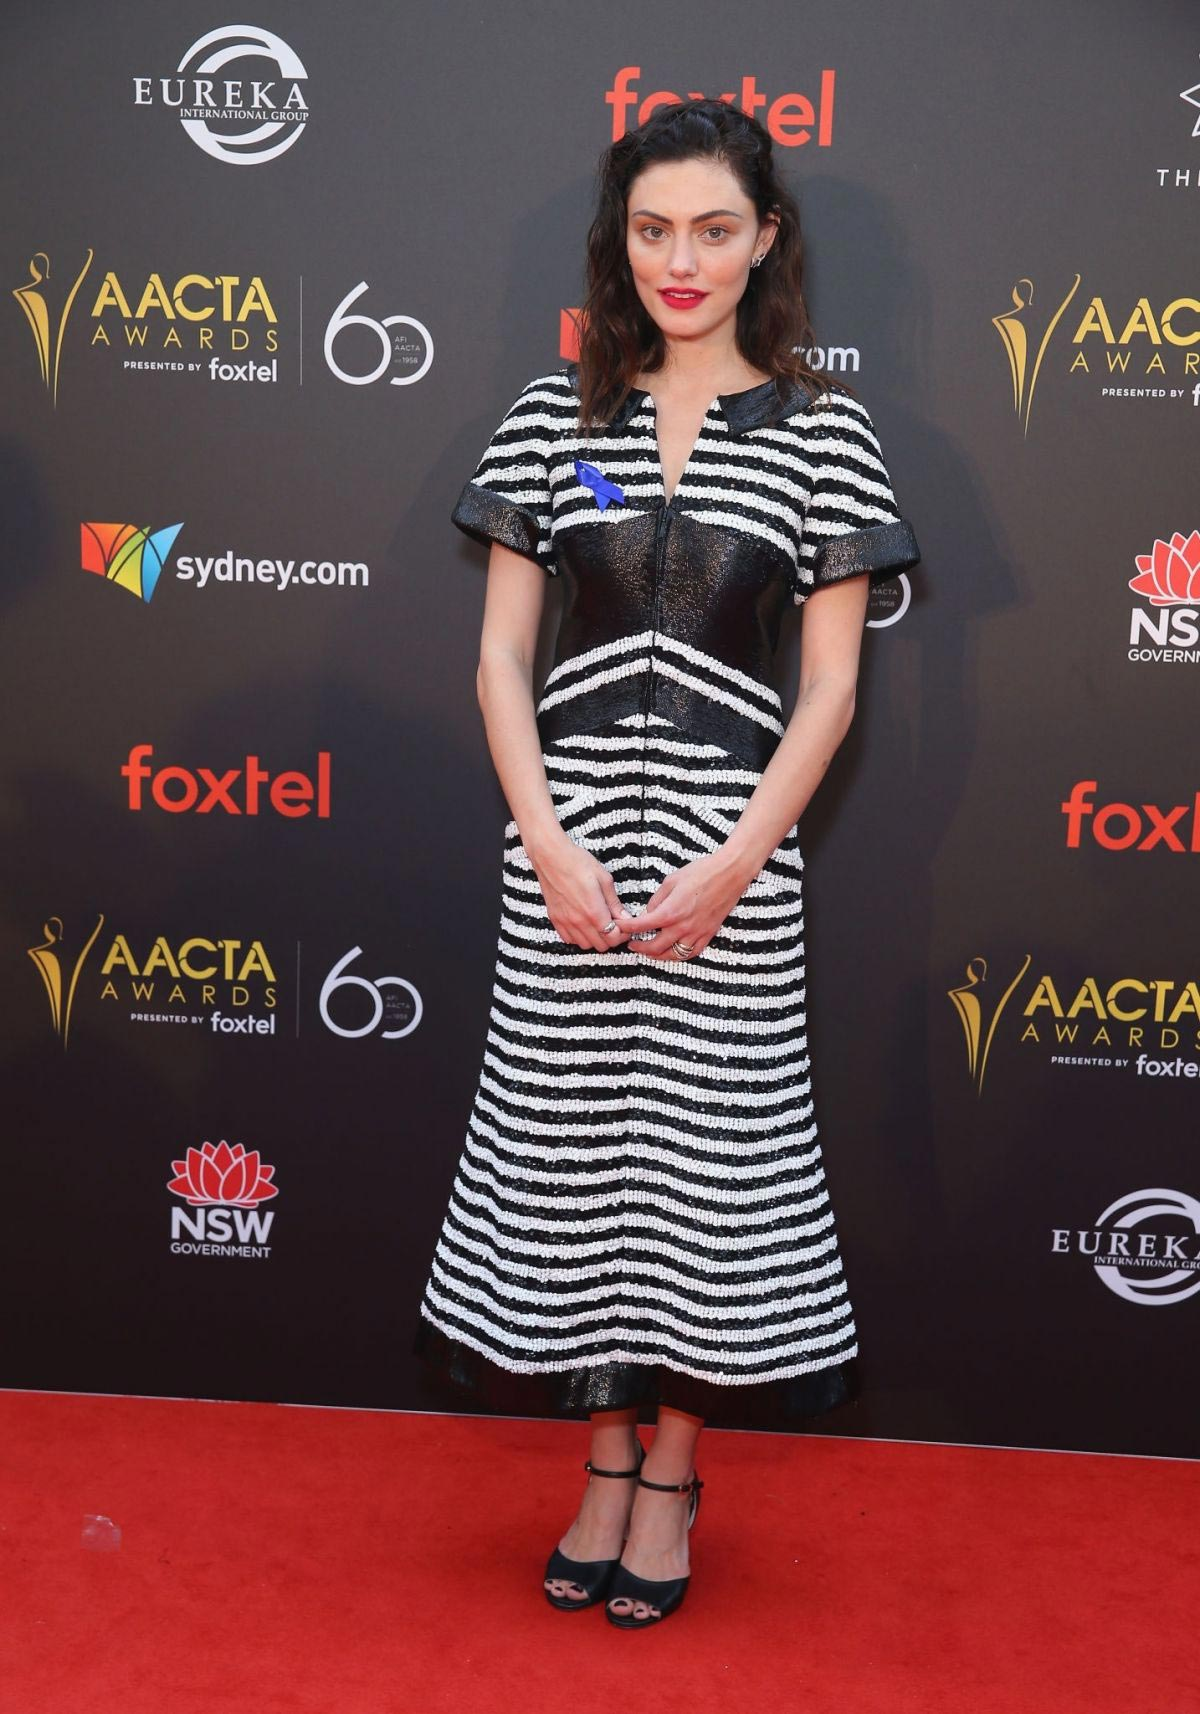 Phoebe Tonkin at Aacta Awards Presented by Foxtel in Sydney 2018/12/05